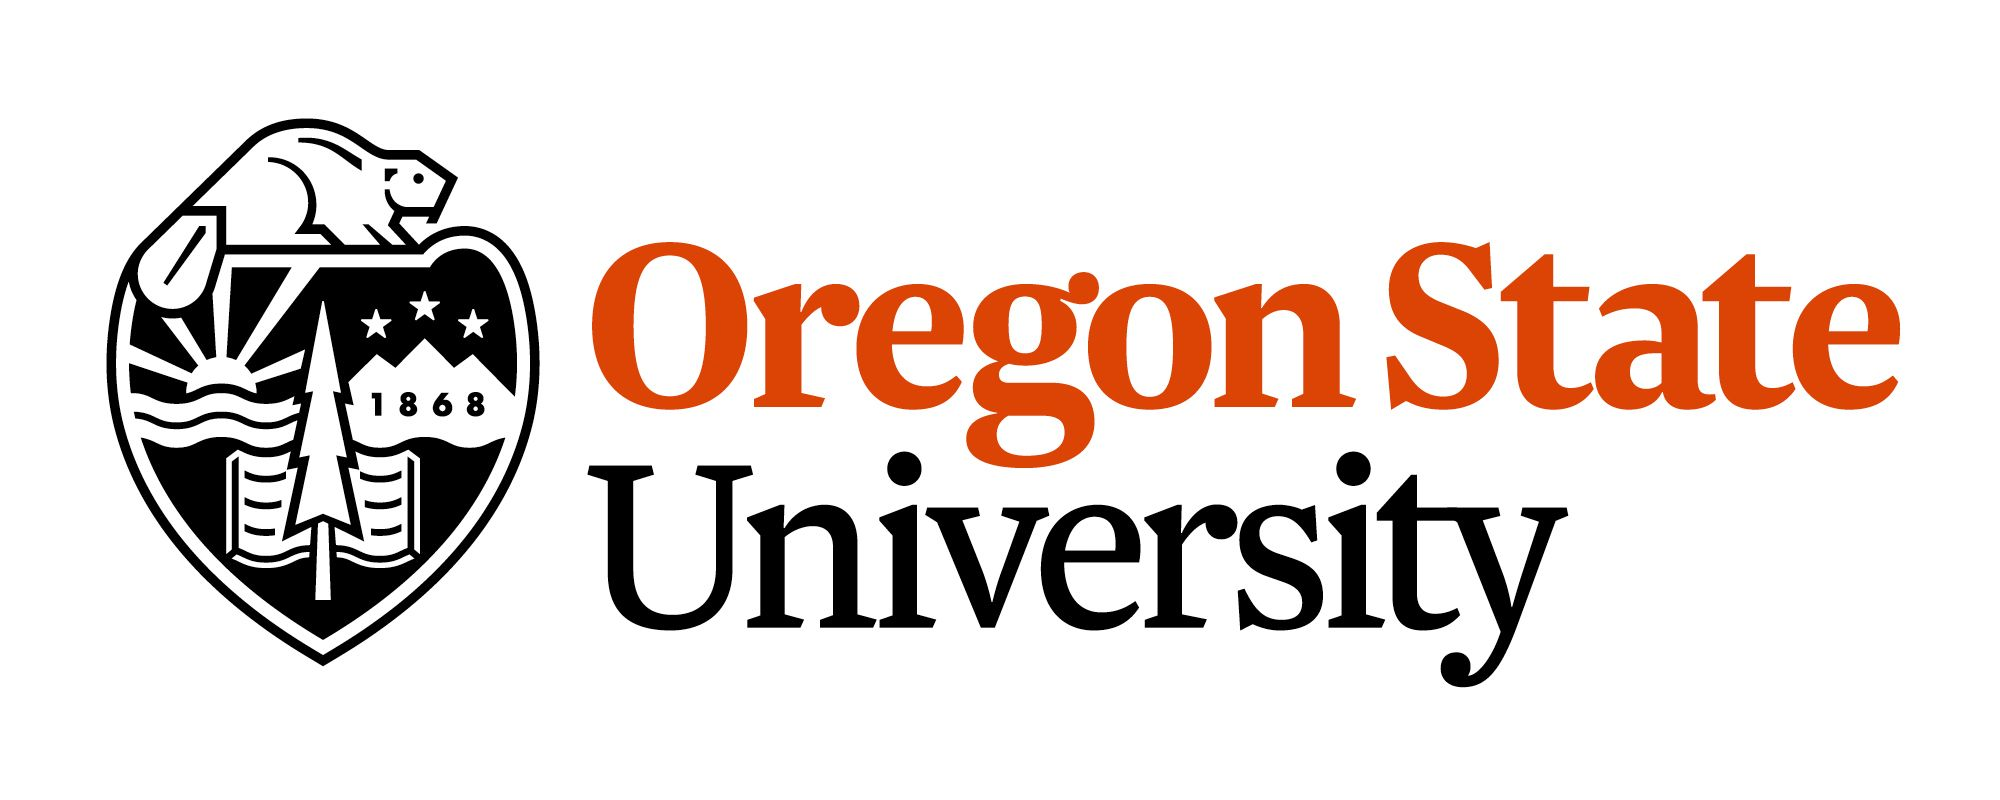 Image result for Oregon State University logo